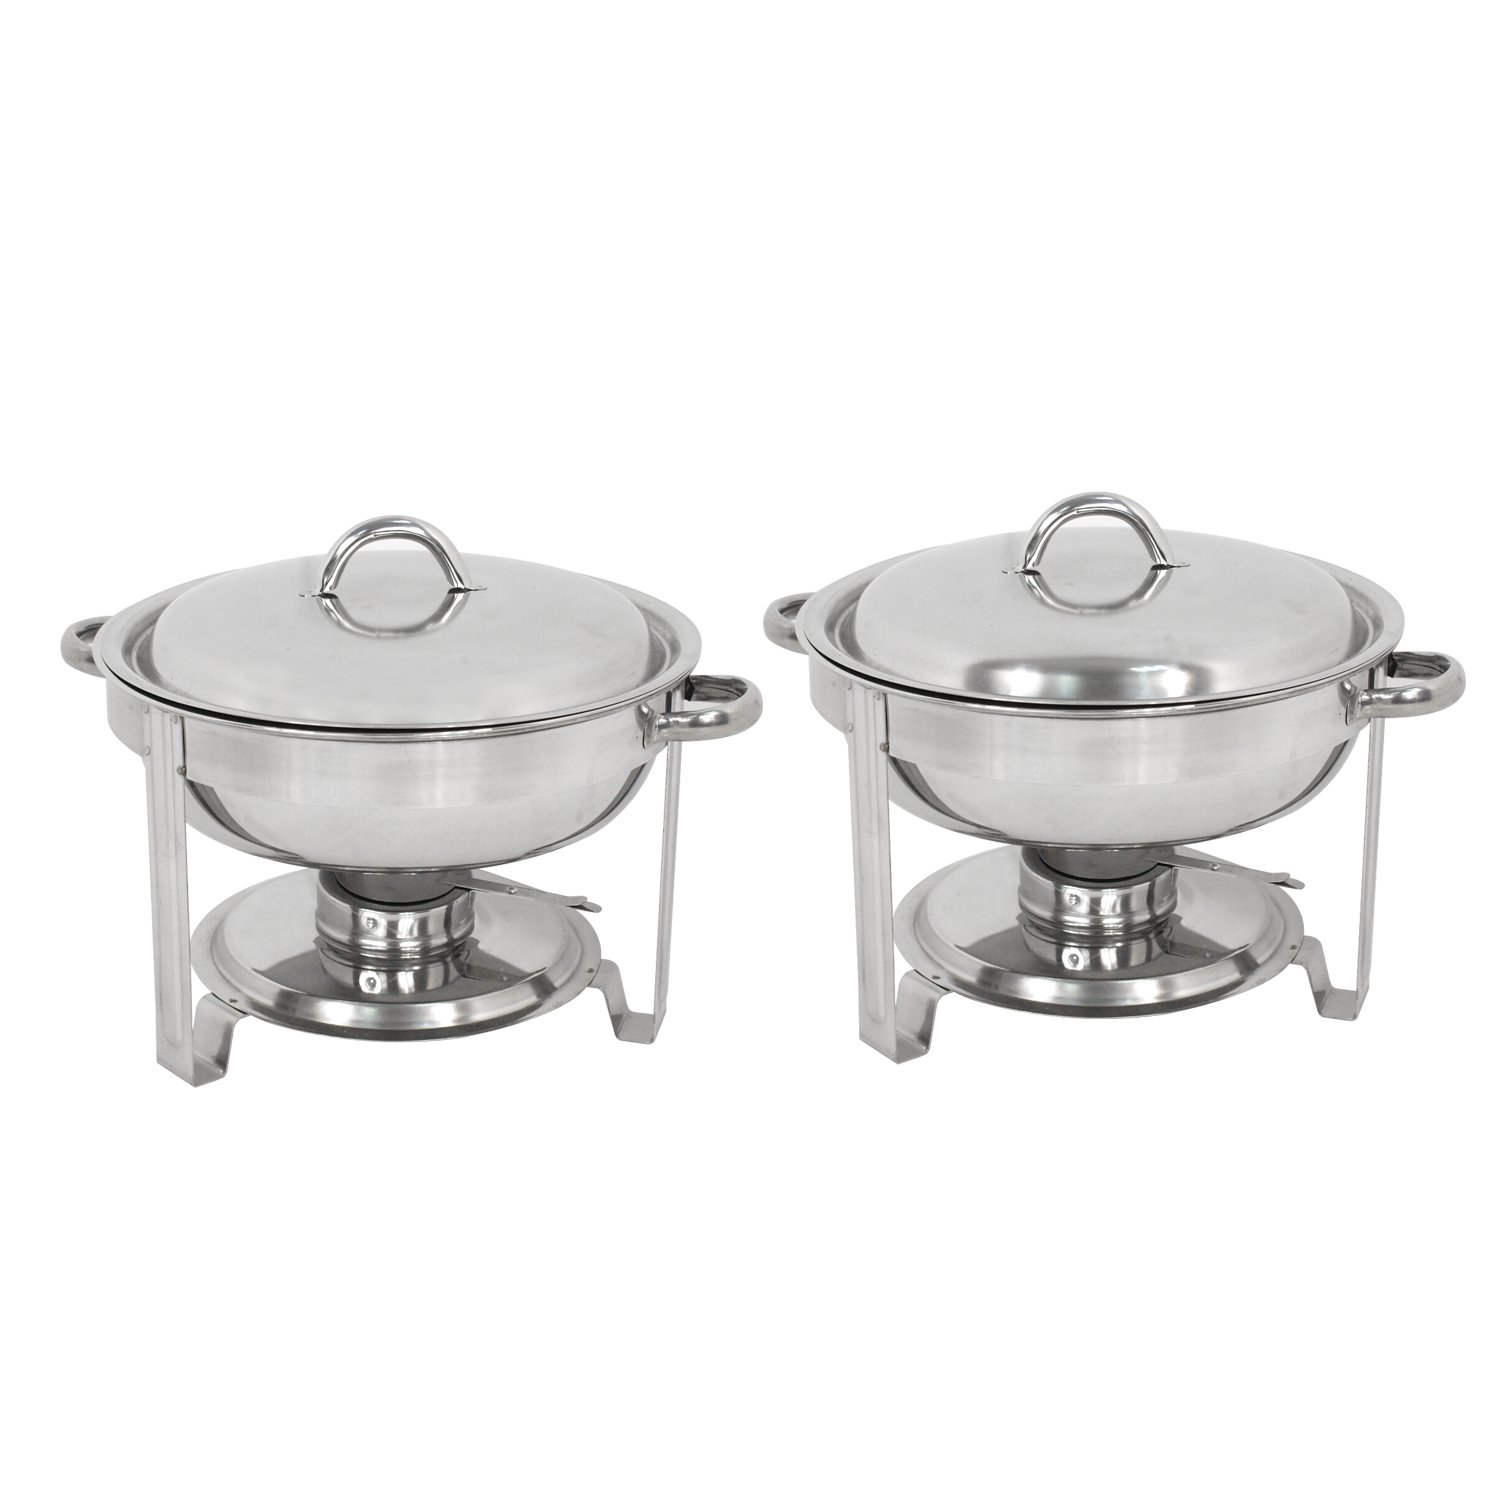 Deluxe Stainless Steel Chafing Dish Round Chafer with Lid 5 Quart,Dinner Serving Buffet Warmer Full Size (2)